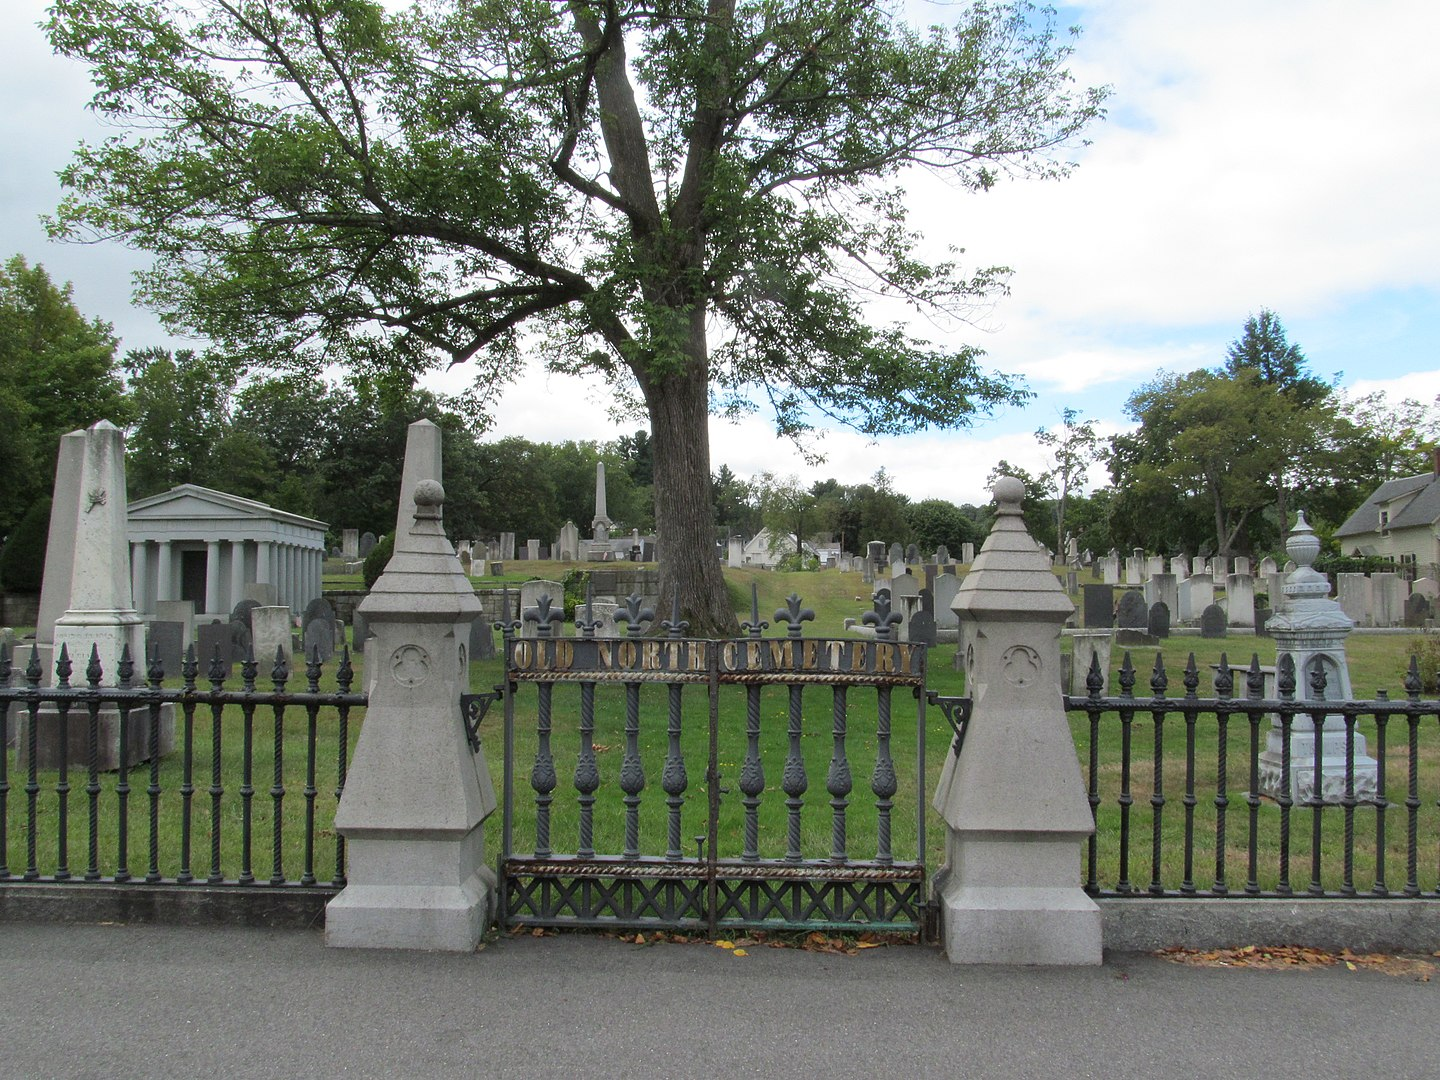 Old North Cemetery (est. 1730) in Concord, NH.